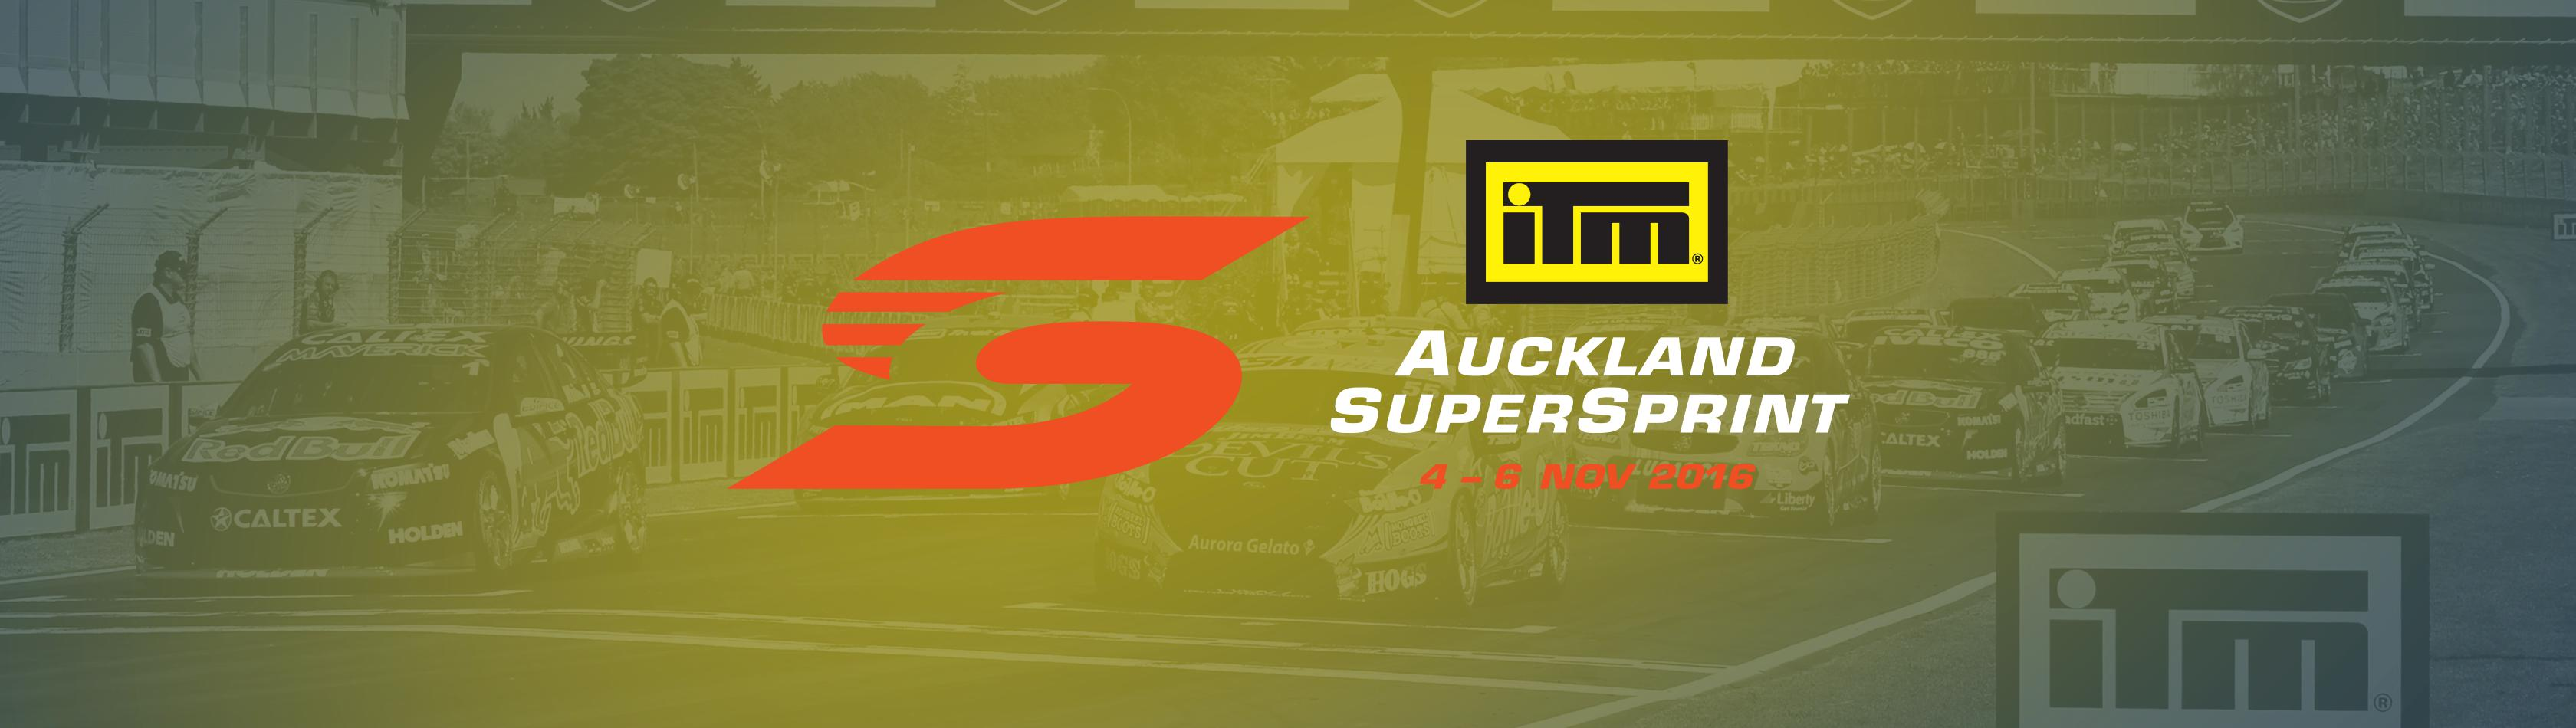 supersprint_2016_image